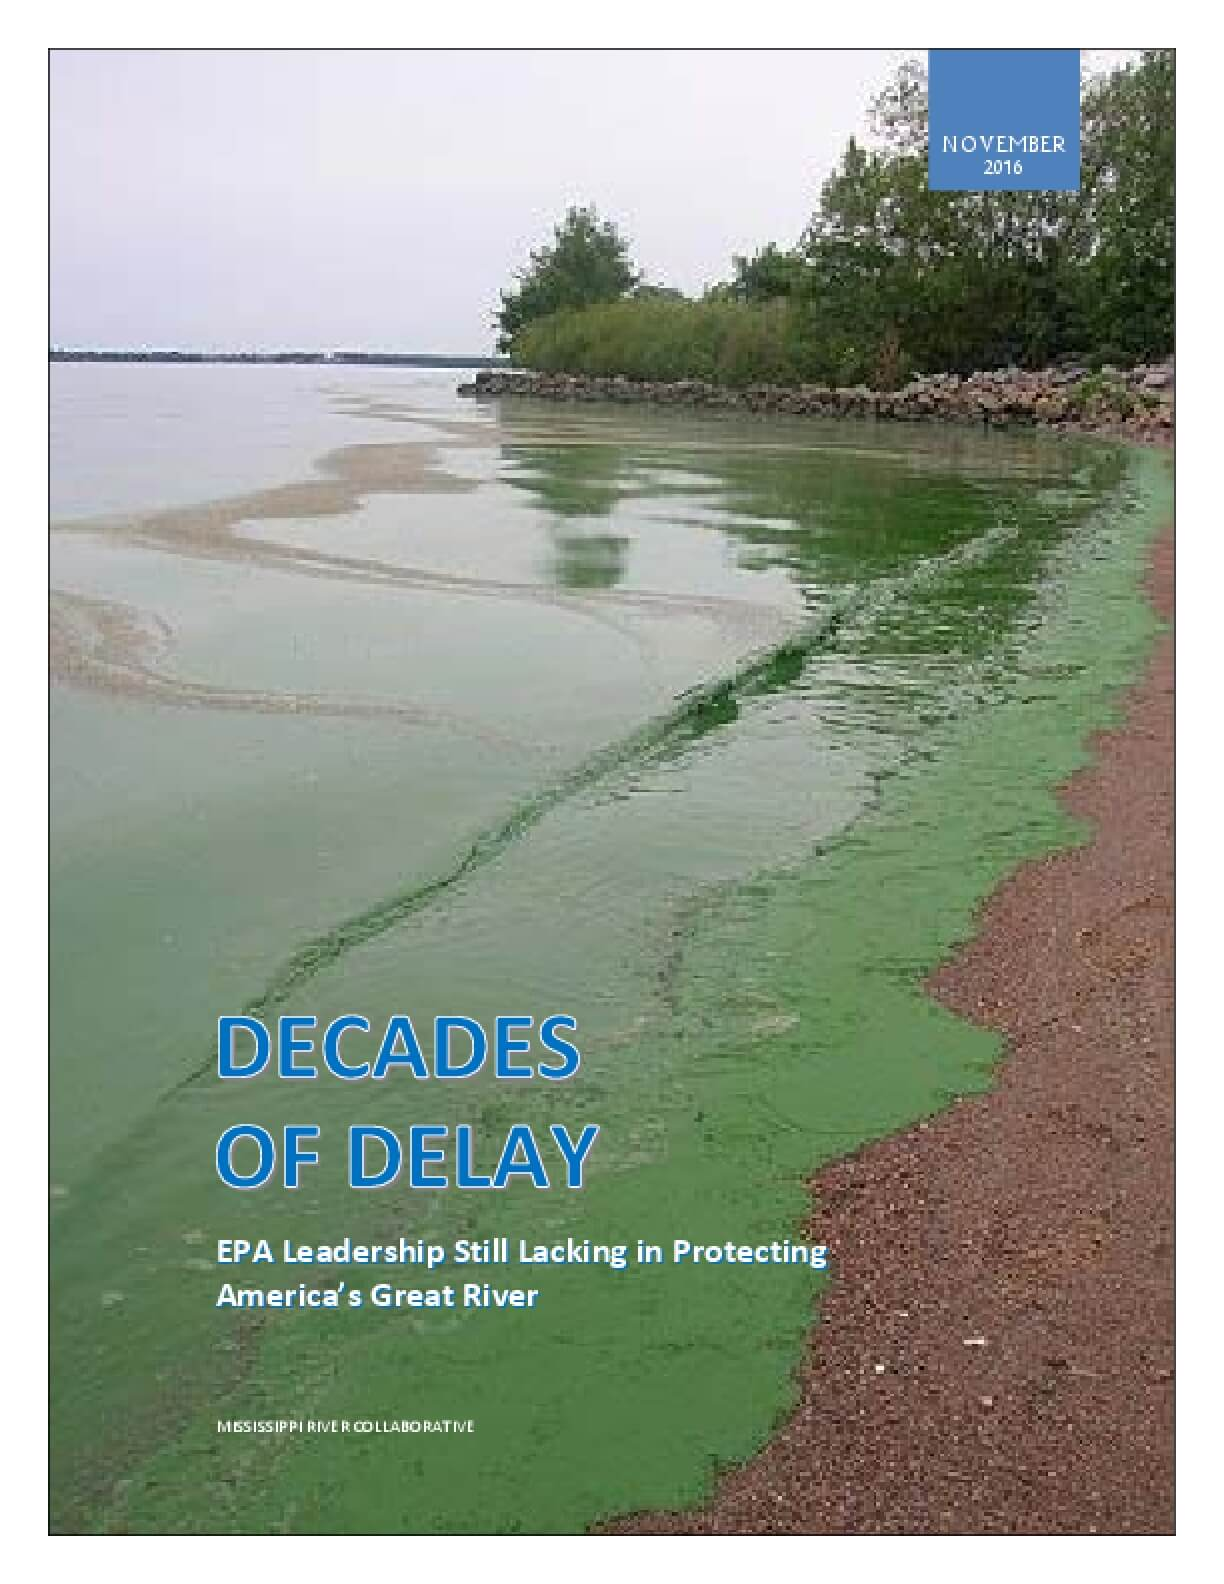 Decades of Delay: EPA Leadership Still Lacking in Protecting America's Great River